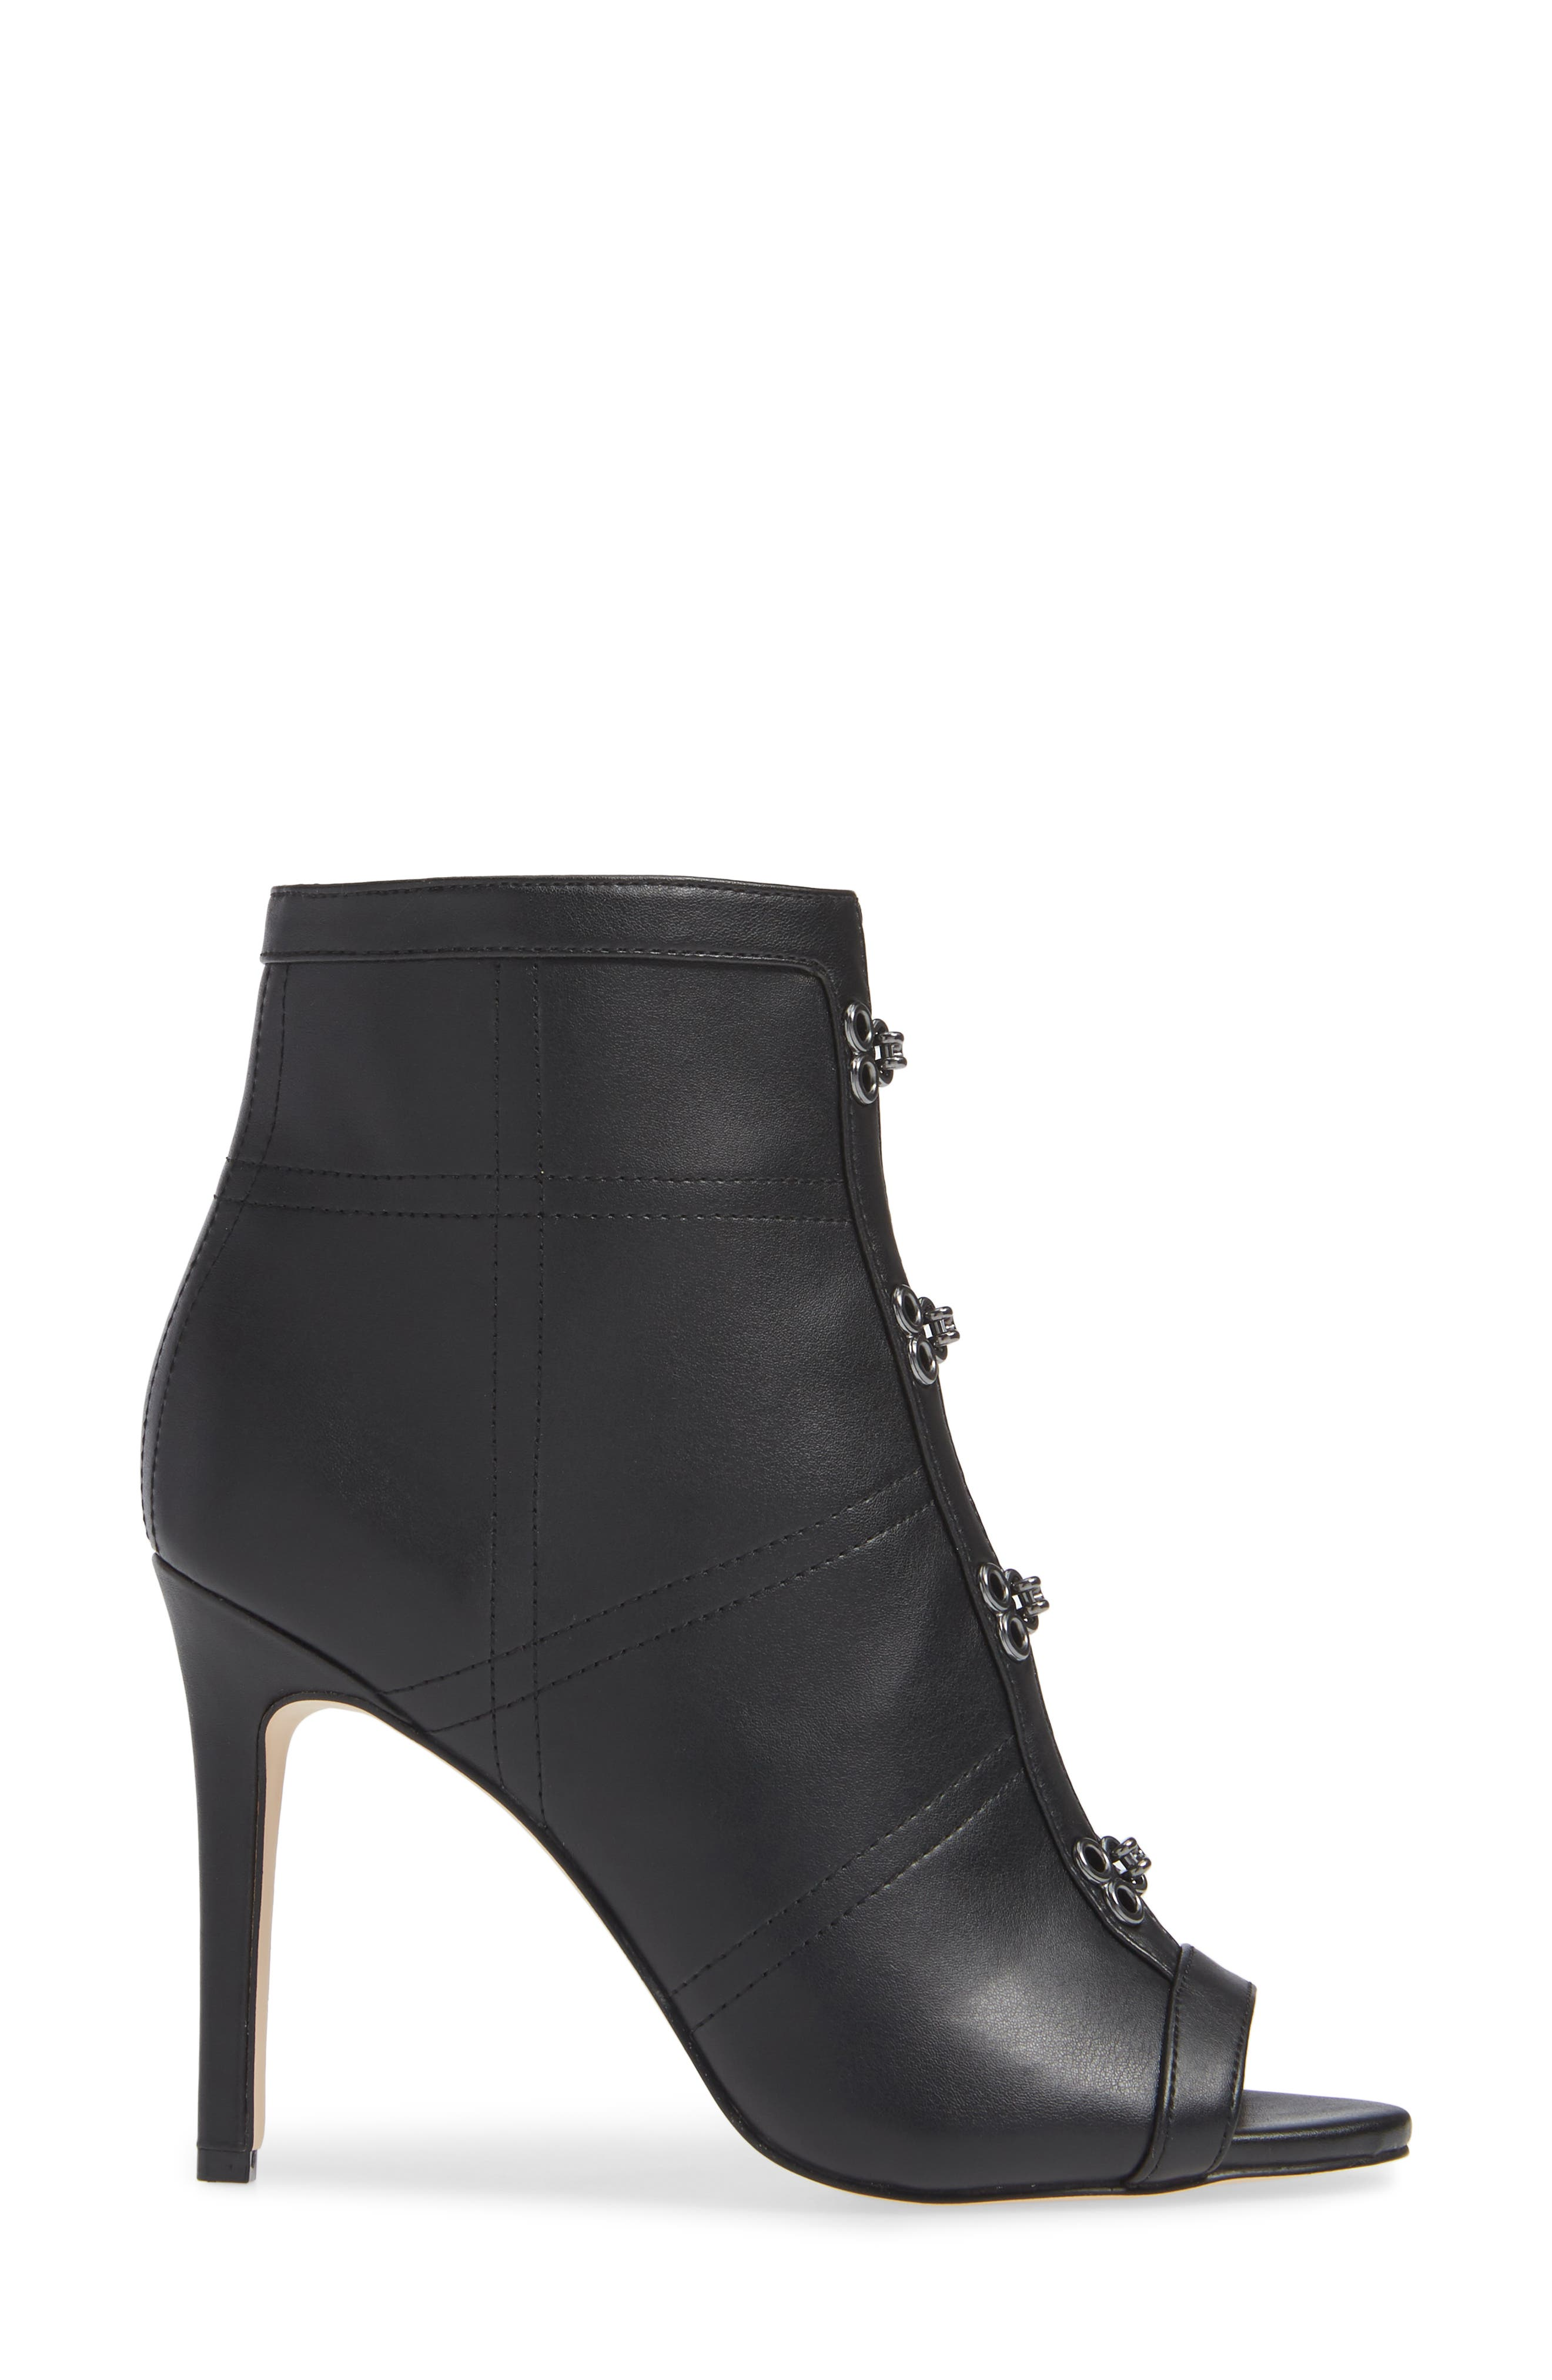 KATY PERRY,                             Open Toe Bootie,                             Alternate thumbnail 3, color,                             BLACK